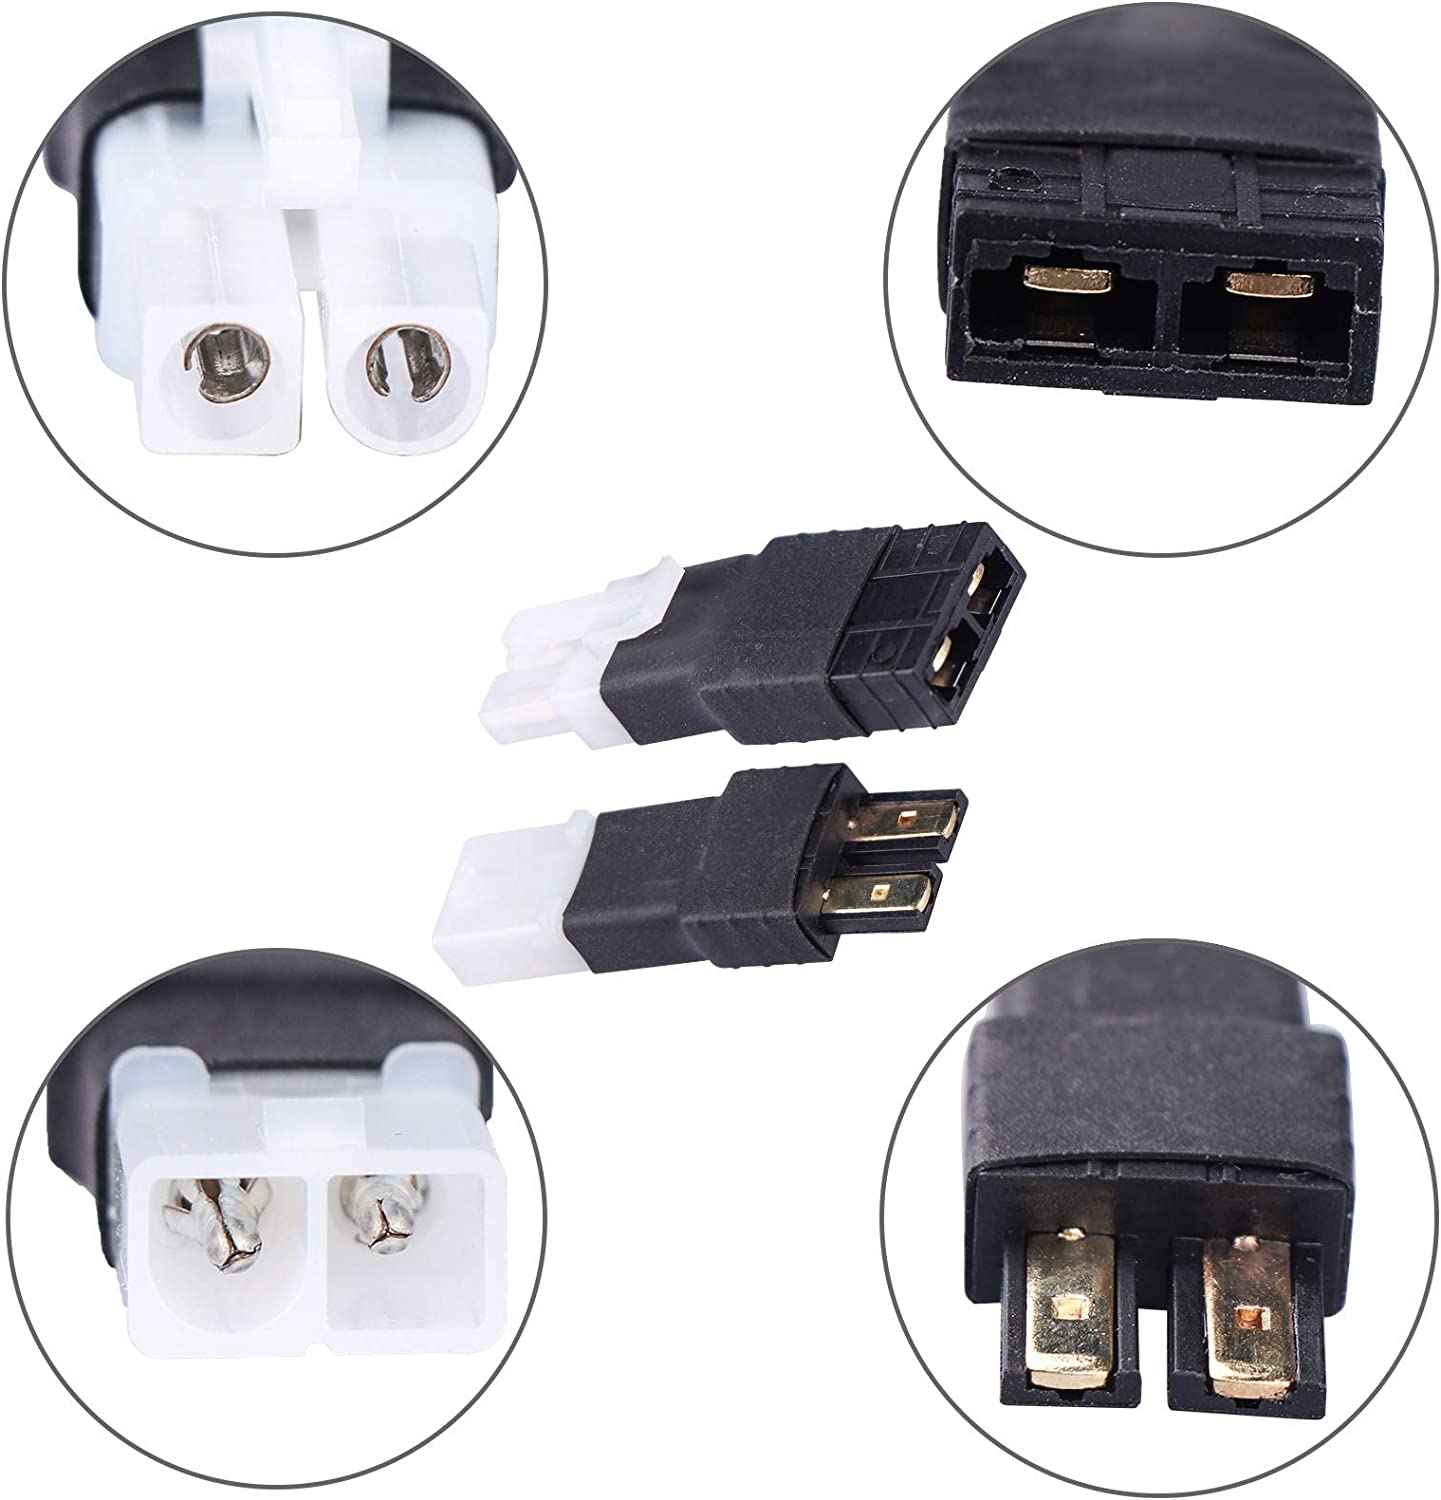 RC Battery Charger Adapter Combo for Traxxas TRX ID Connector to Tamiya Male Female Charging or Converting Battery Plugs 5-Pack